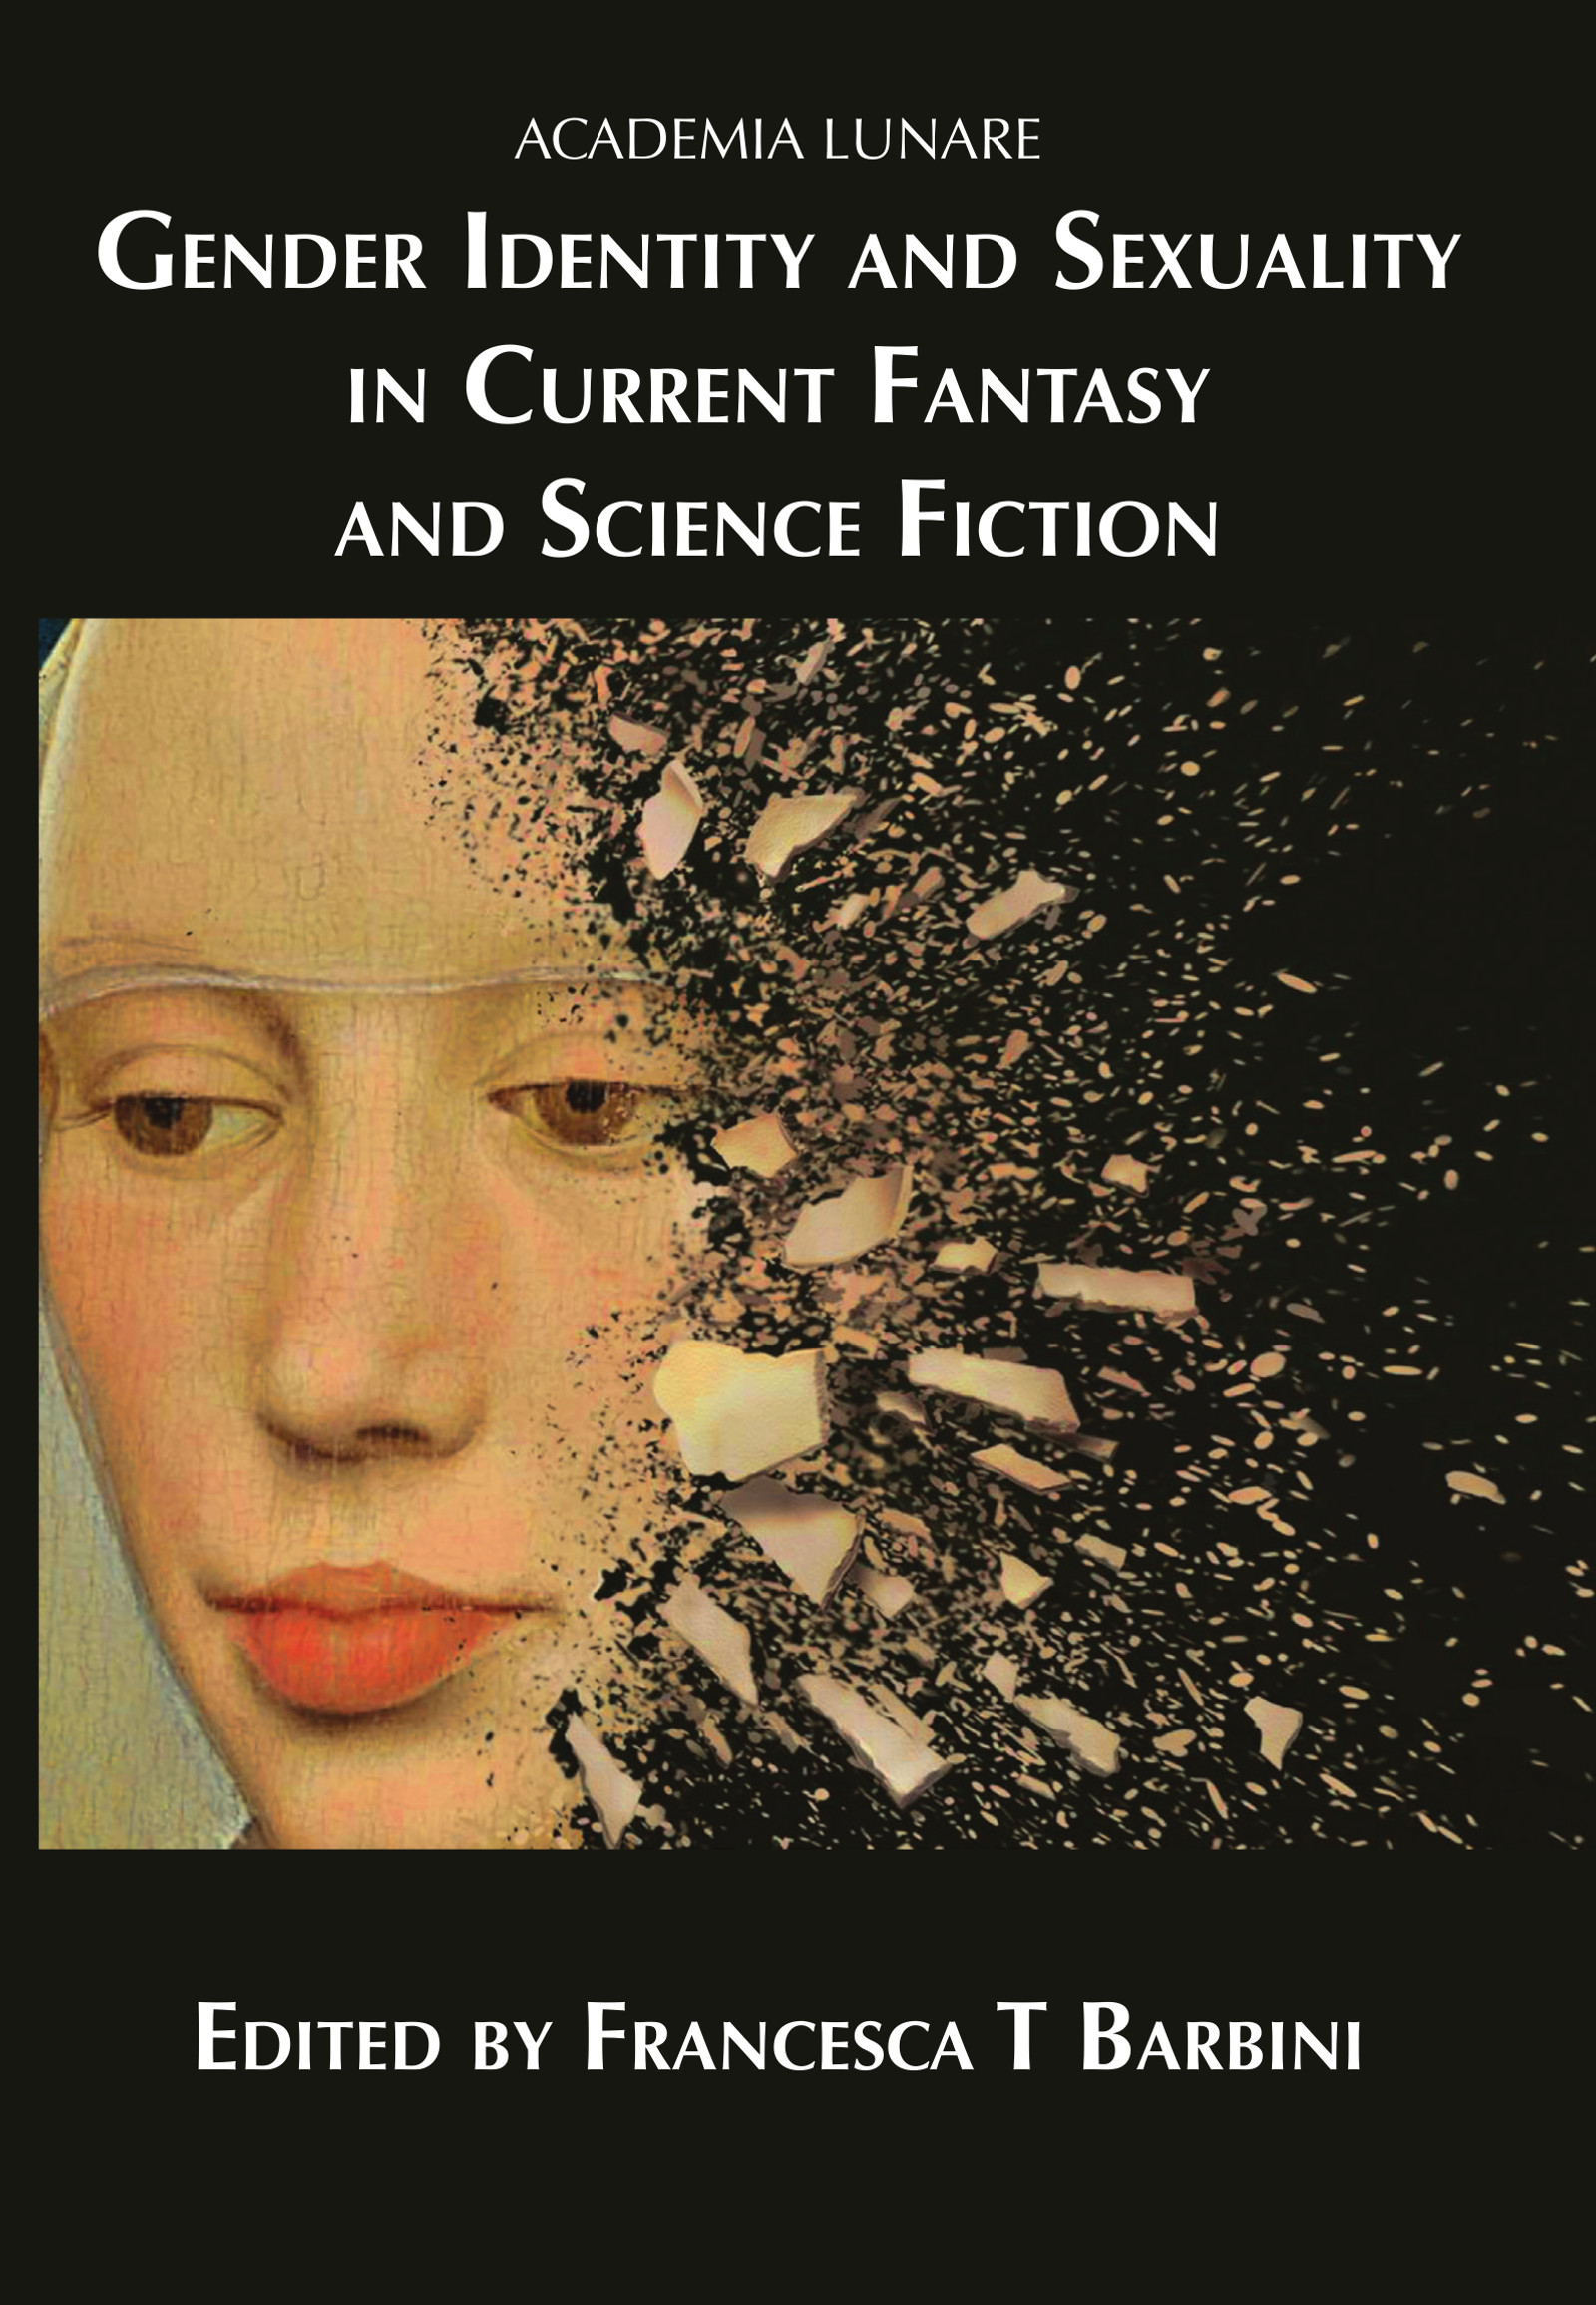 Gender Identity and Sexuality in Fantasy and Science Fiction